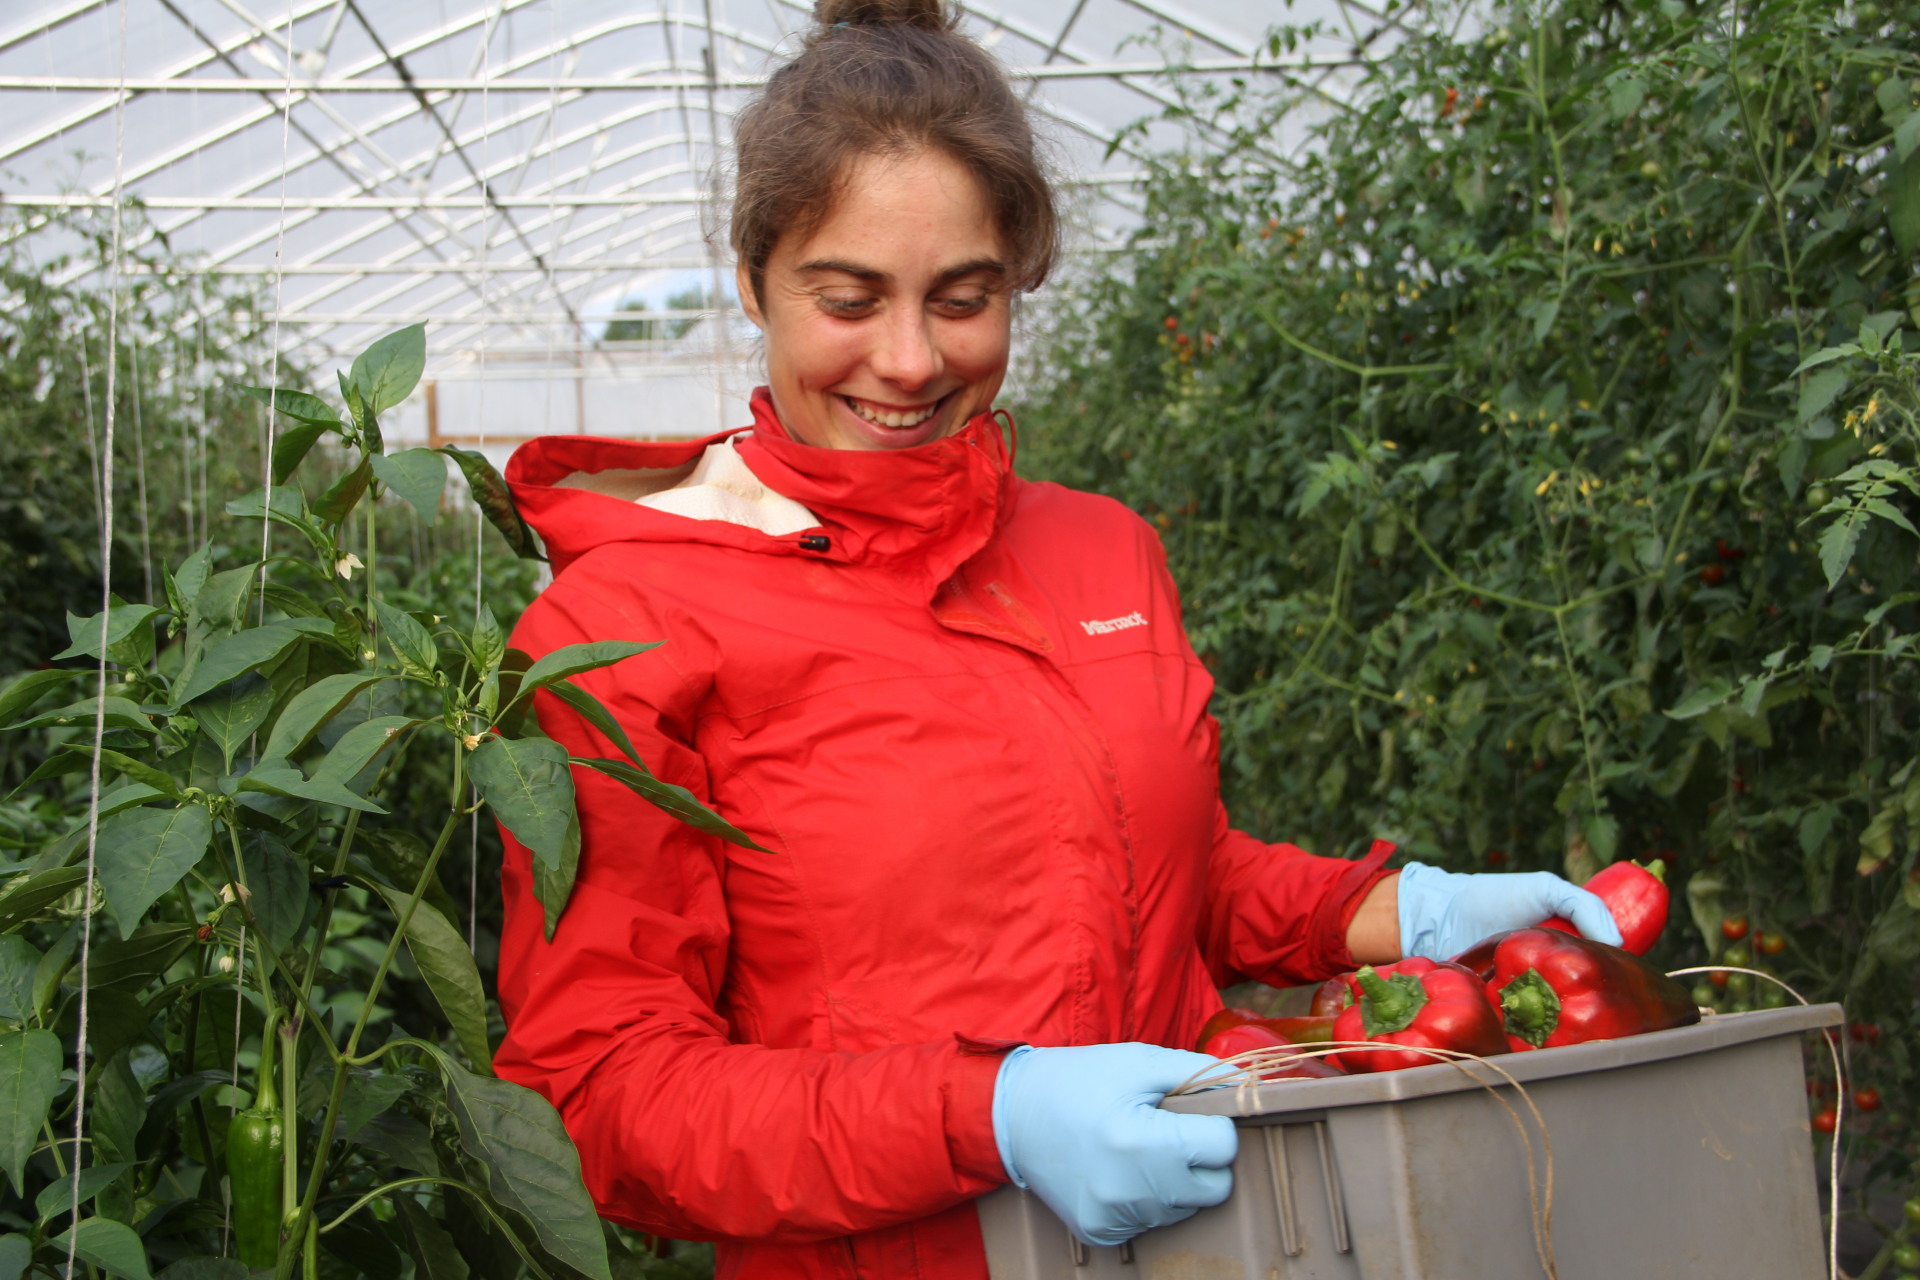 2015 Crew Leader, Emma harvests peppers from the hoop house